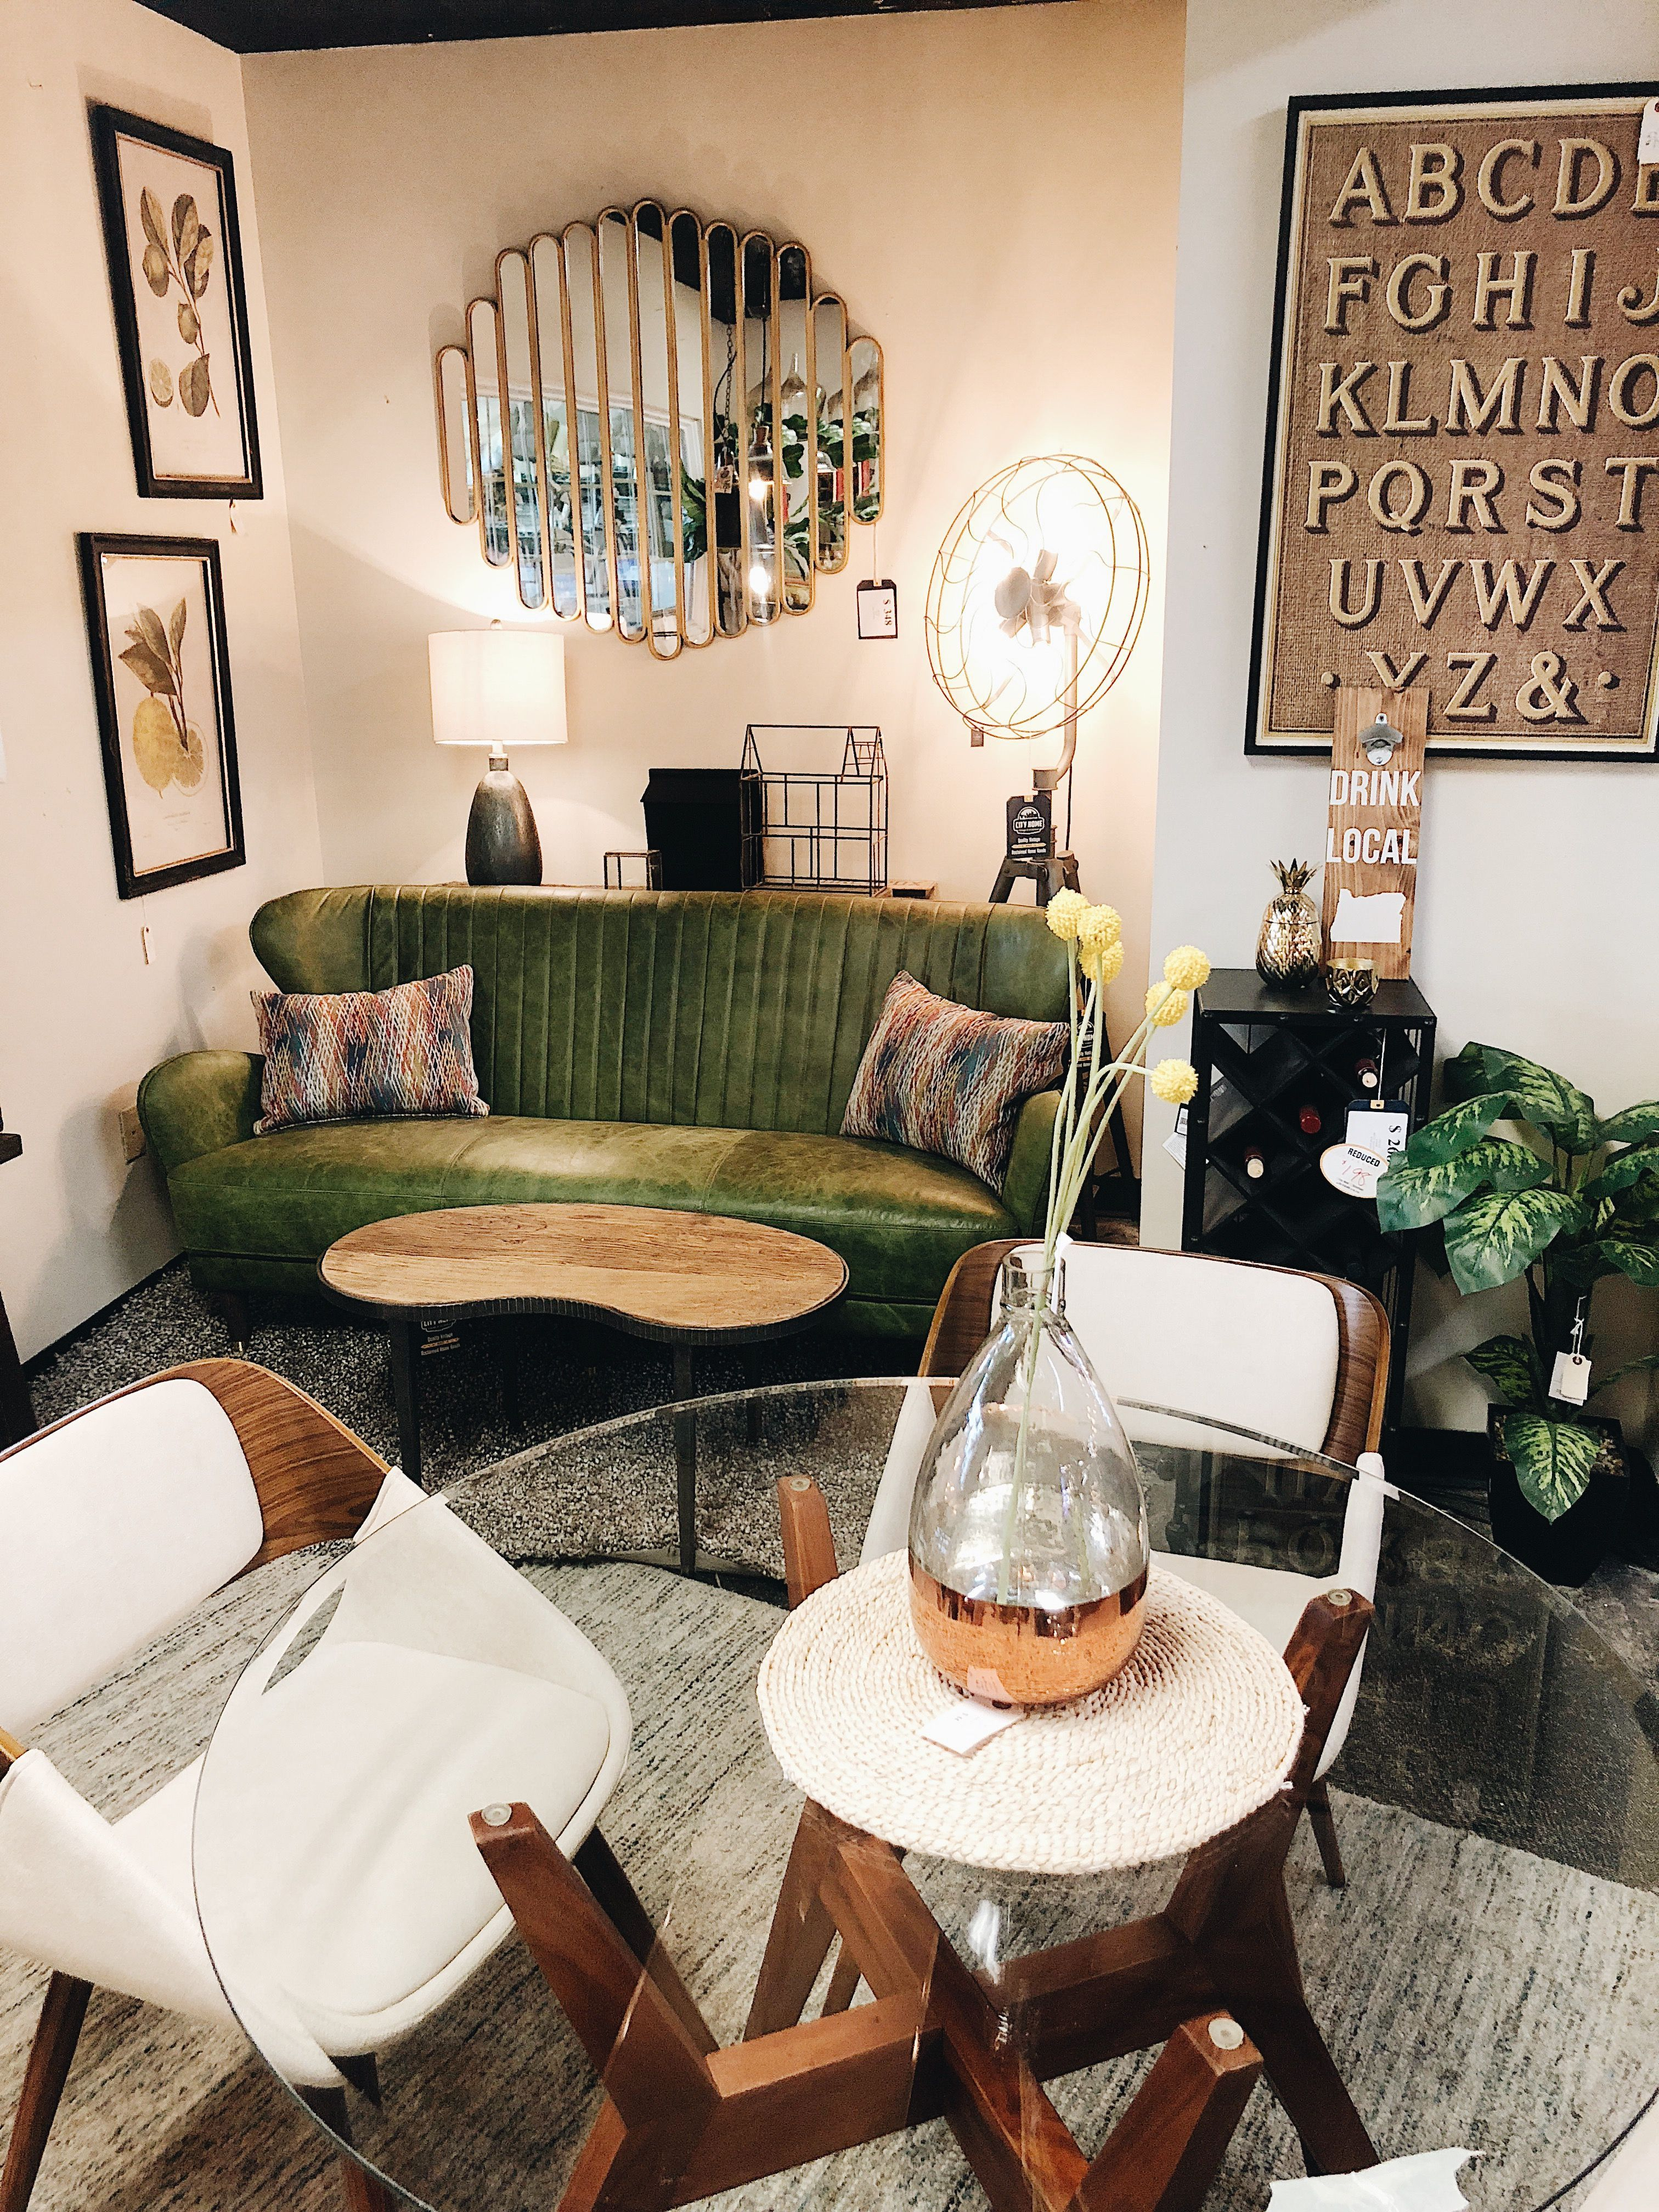 Shop midcentury modern furniture and decor at City Home in Portland